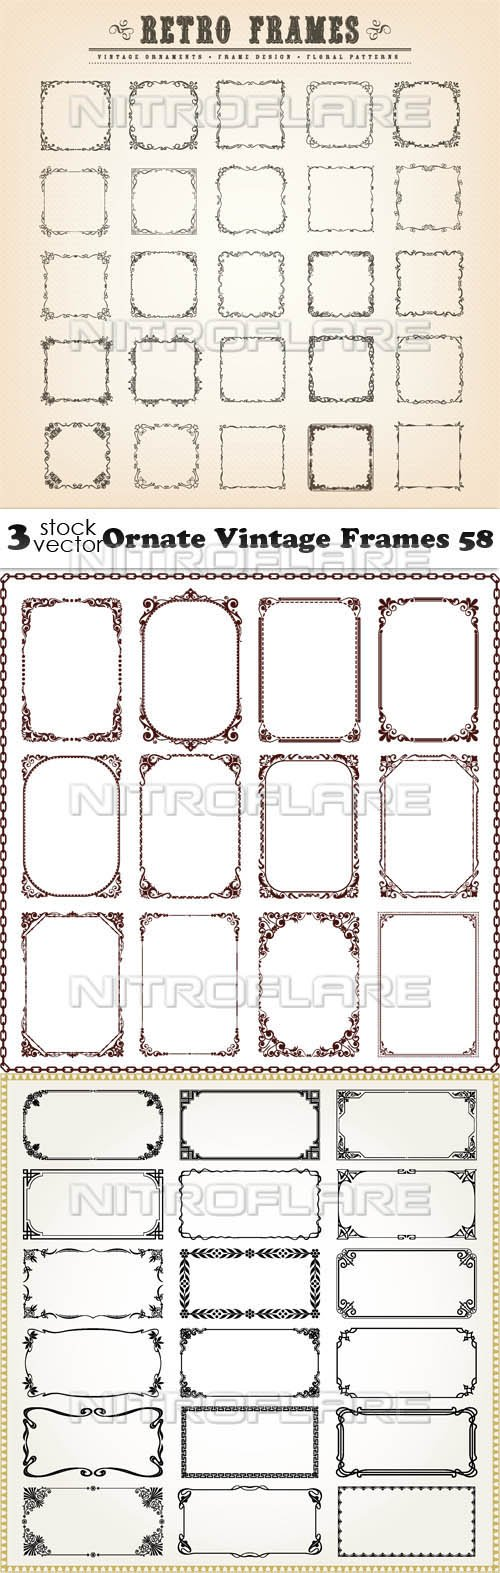 Vectors - Ornate Vintage Frames 58